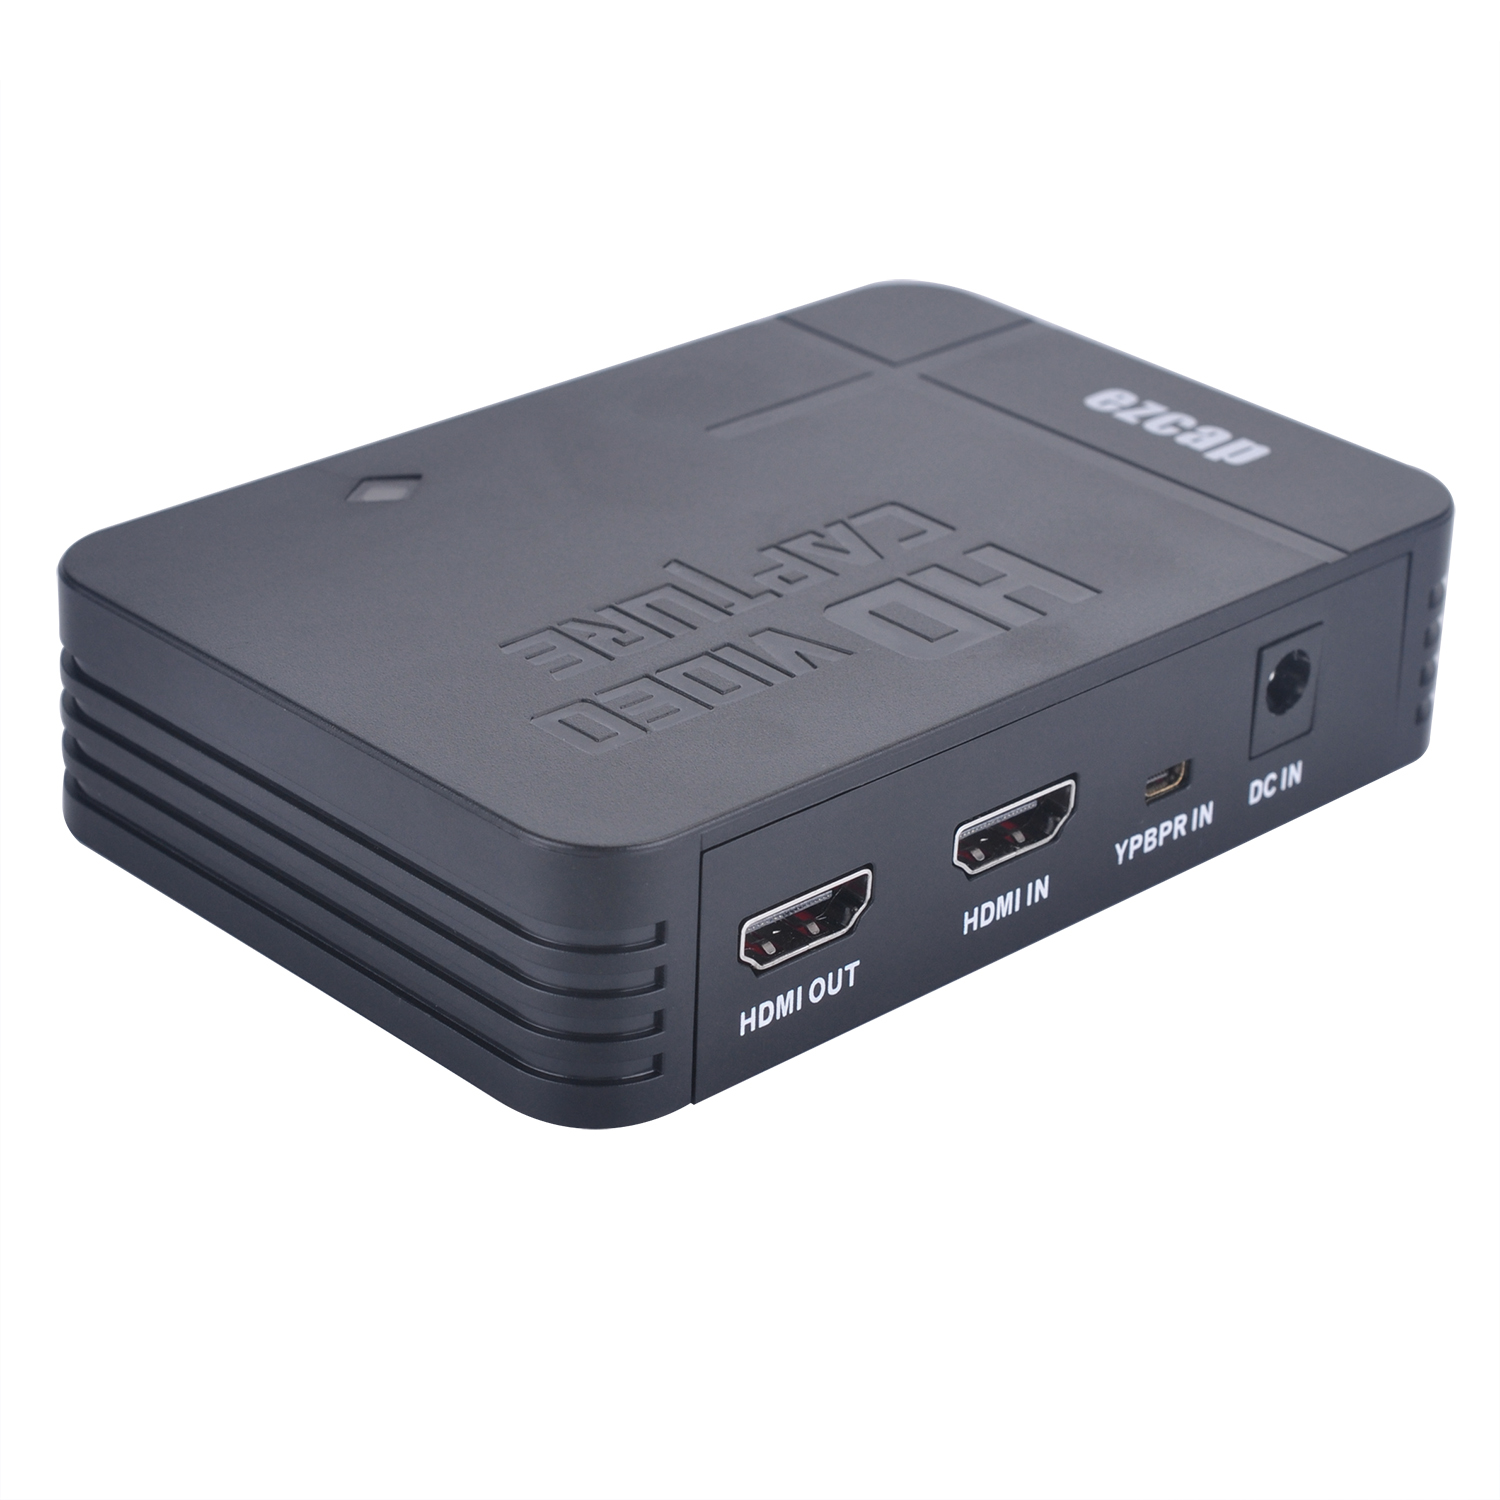 HDMI Game Capture 1080P HD Video Capture Recorder Box for XBOX One 360 PS3WII U ezcap280PB